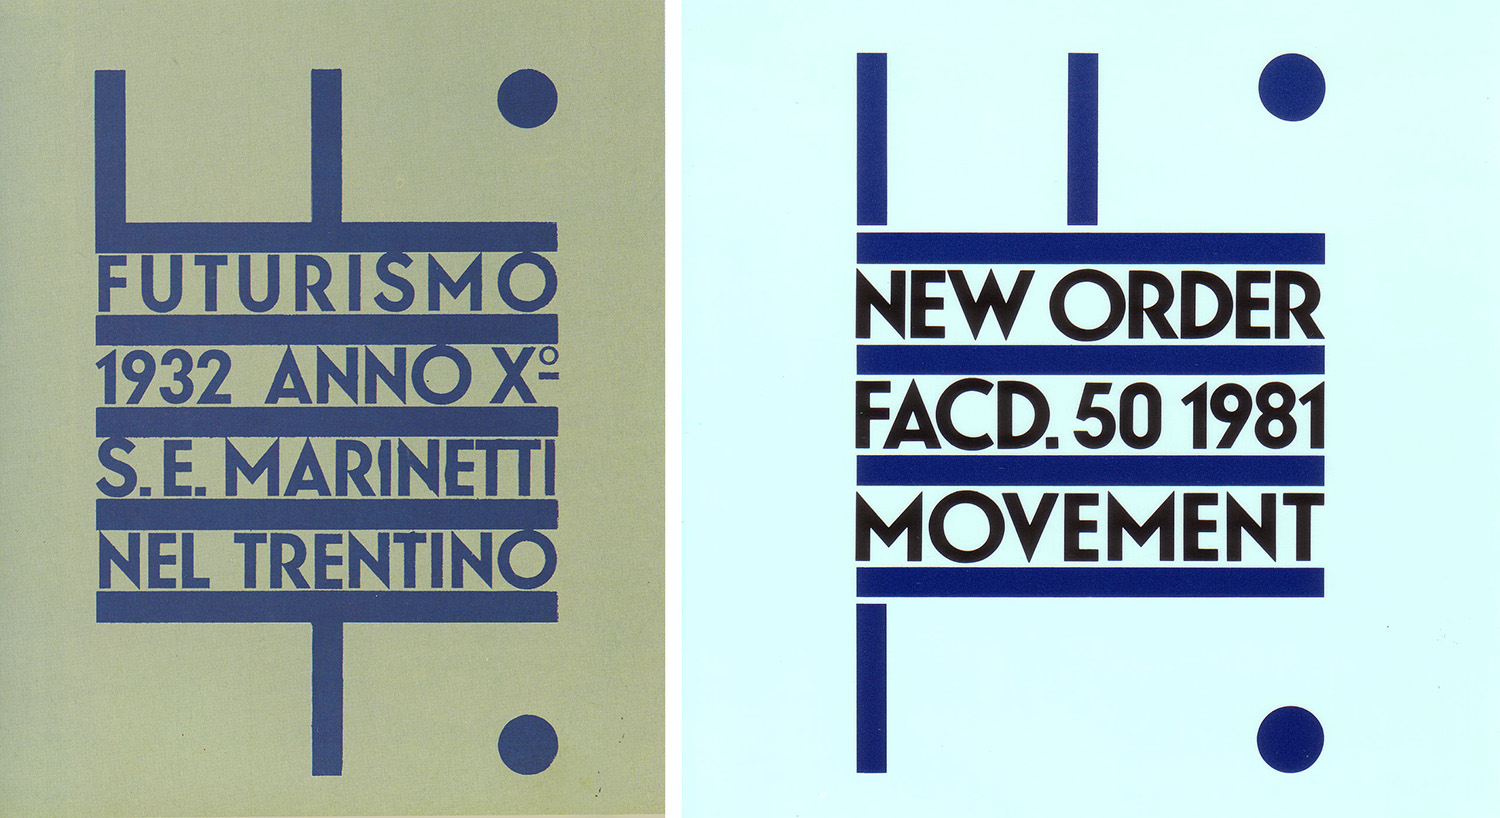 Peter Saville's cover for New Order's Movement LP, 1981, after Fortunato Depero's Futurismo, 1932